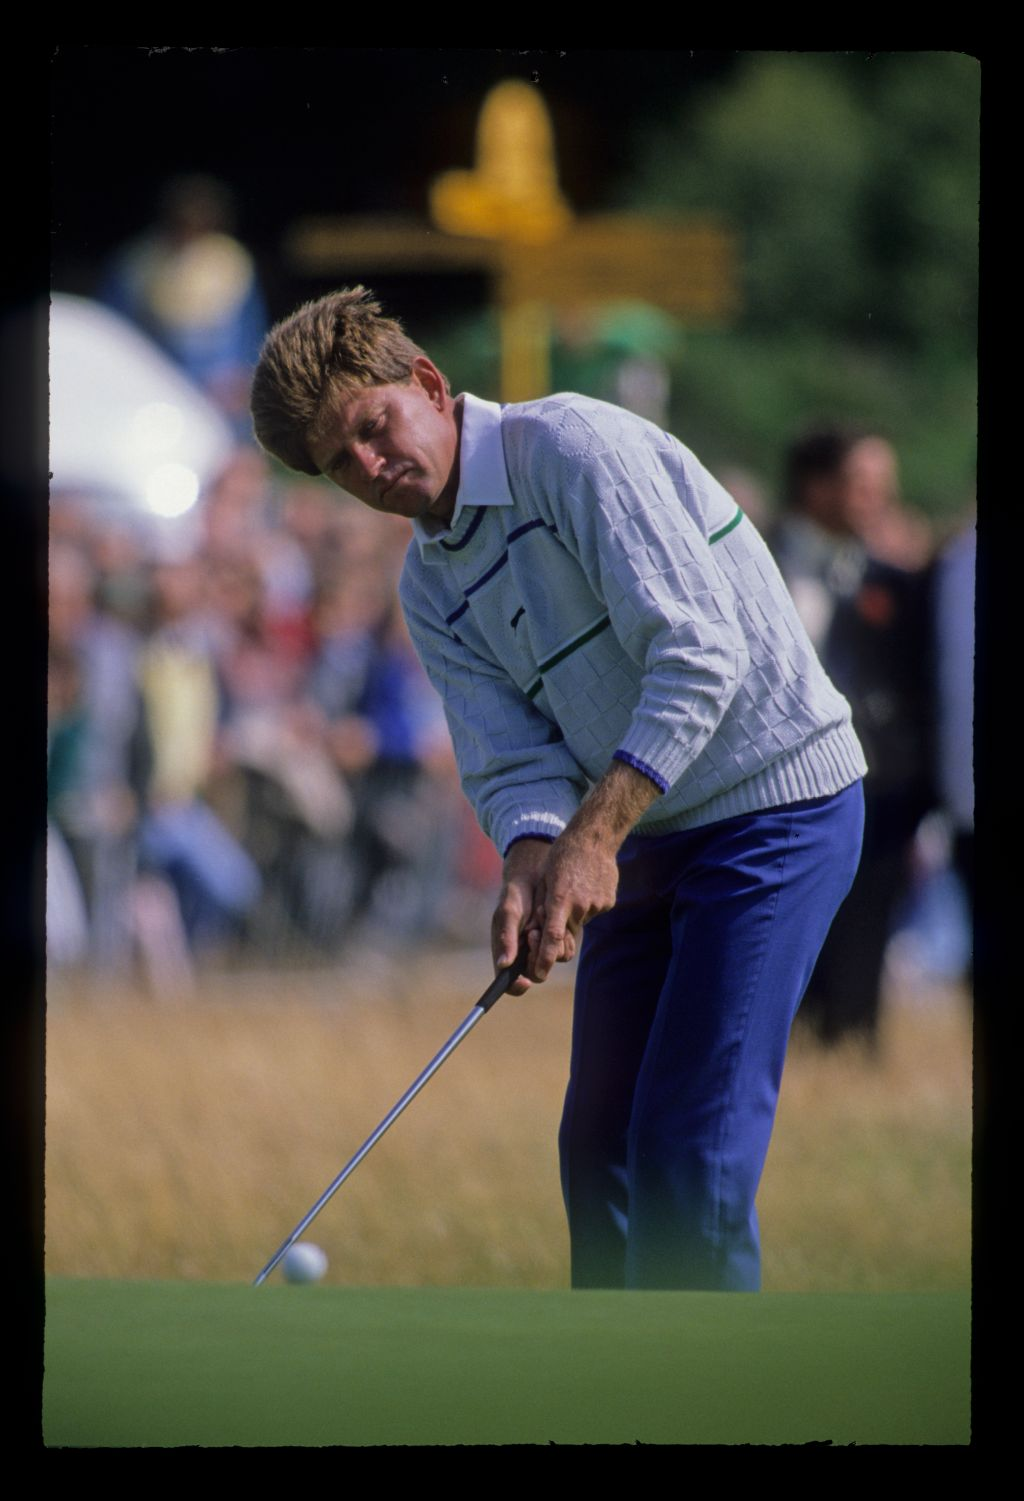 Nick Price putting from the fringe during the 1988 Open Championship